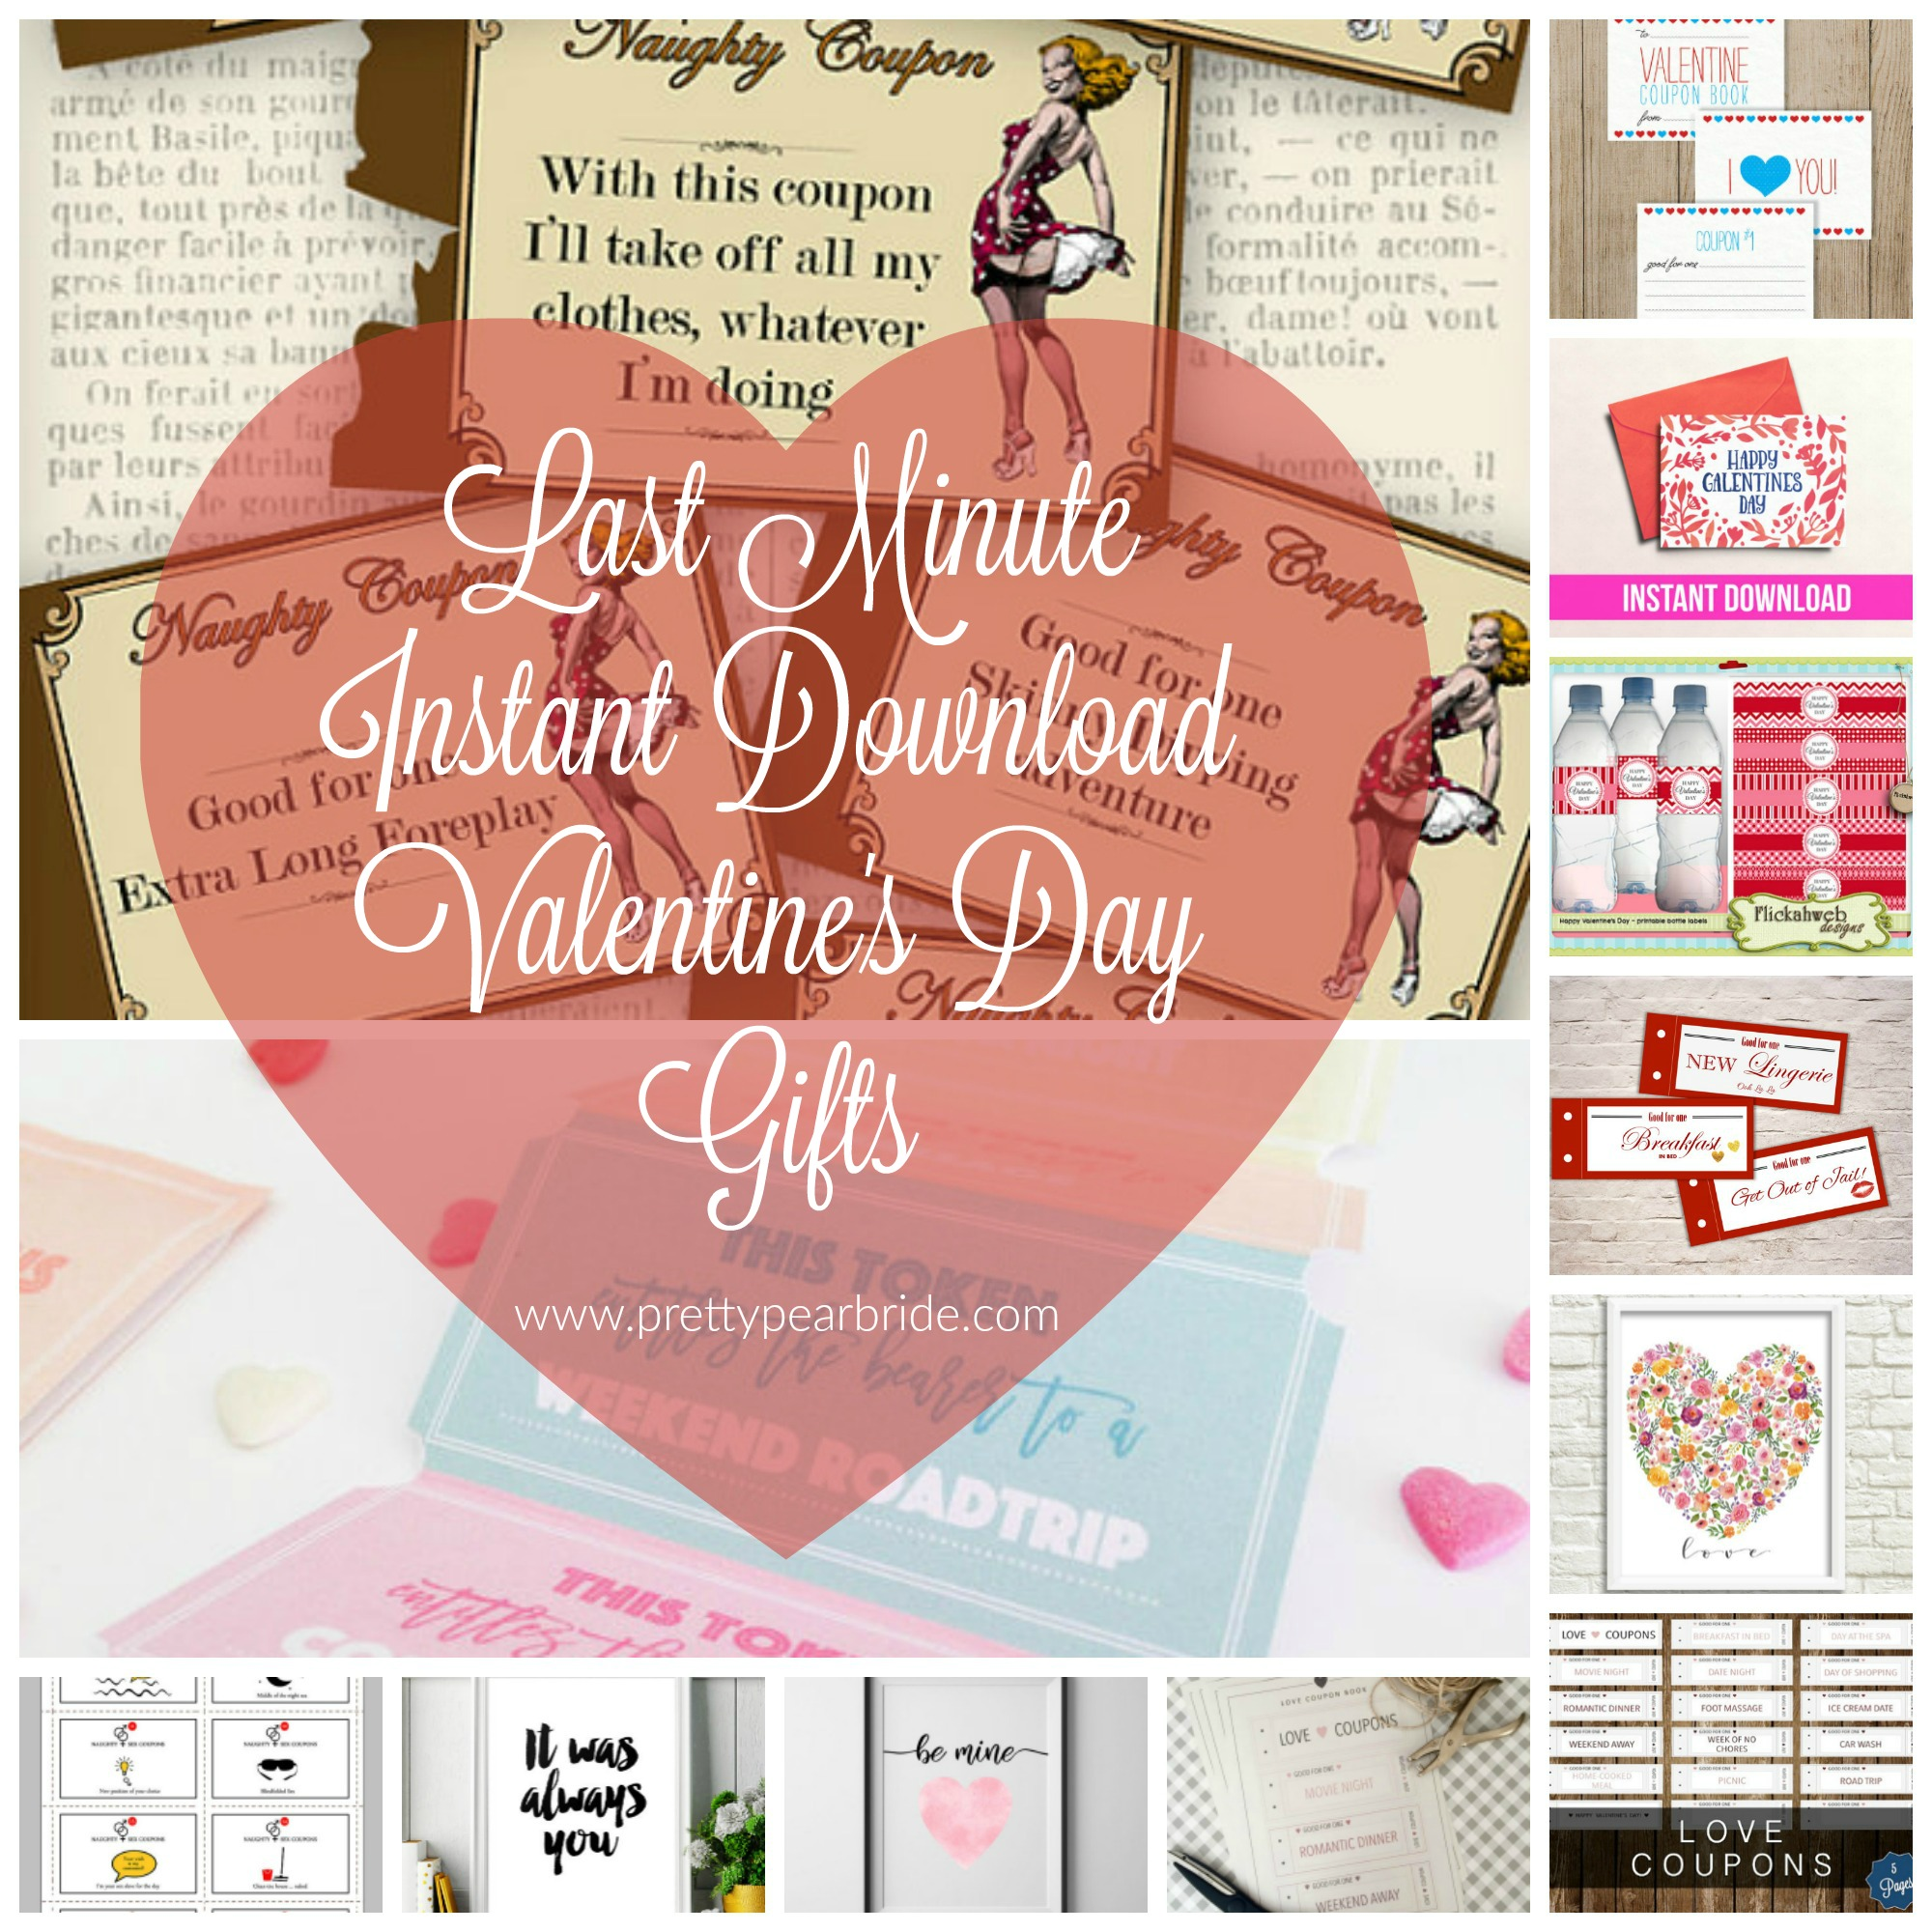 MUST HAVE MONDAY | Last Minute Instant Download Valentine's Day Gifts | Pretty Pear Bride